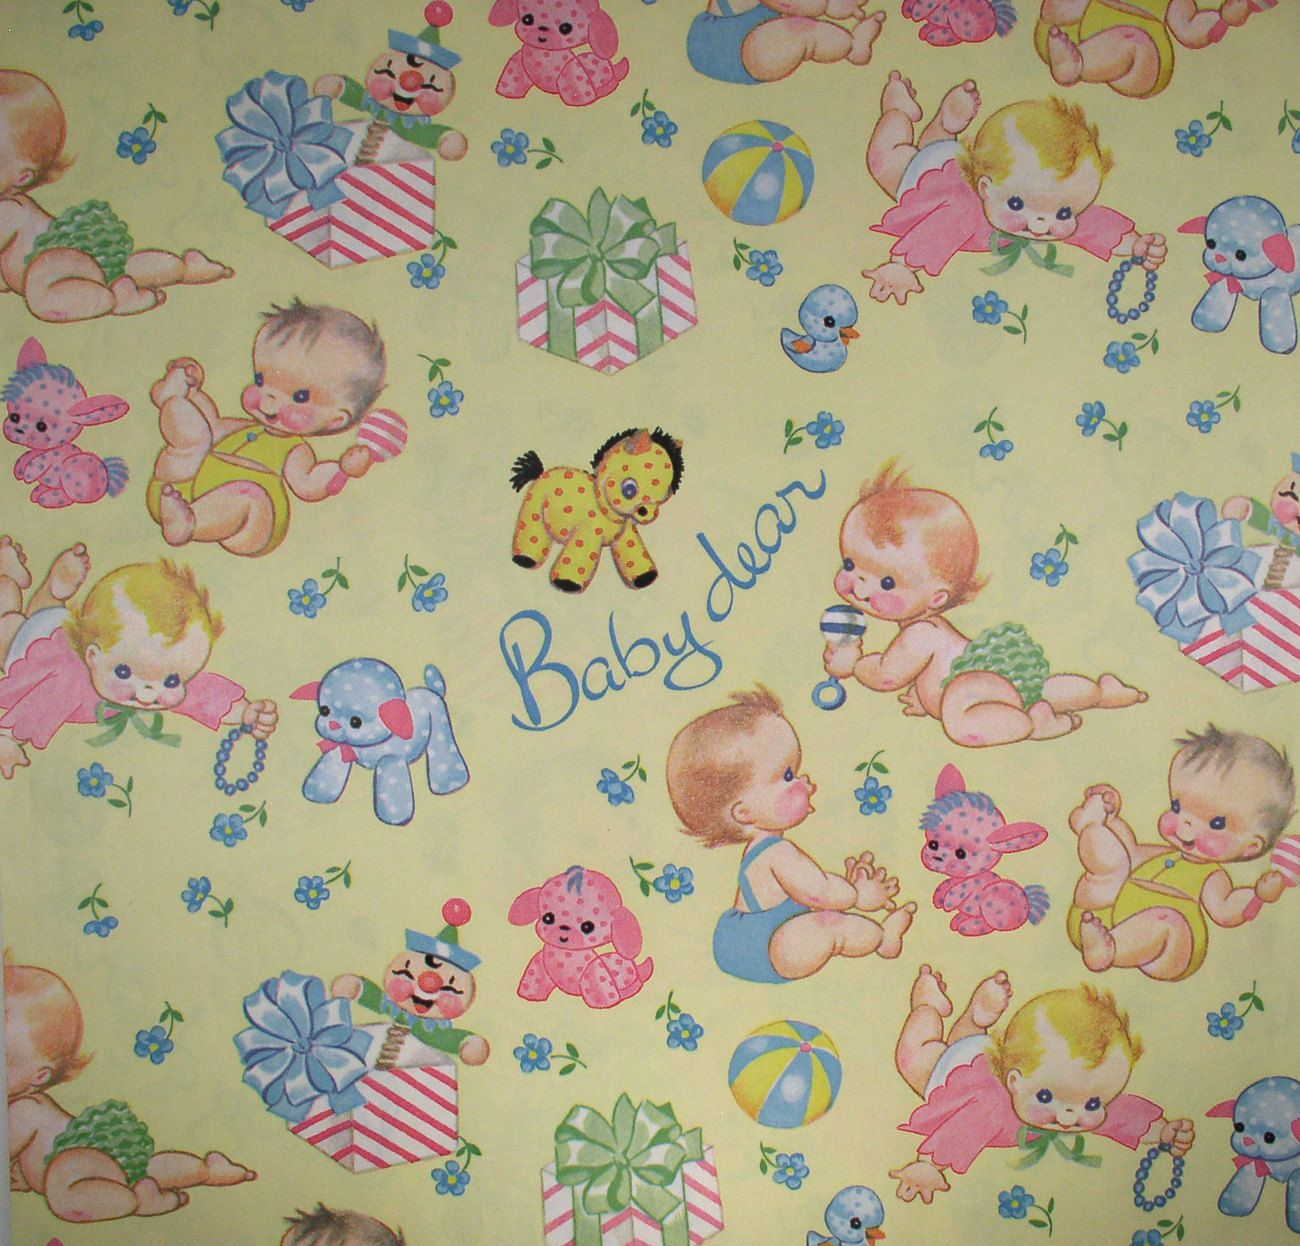 Vintage Baby Gift / Baby Shower Wrapping Paper.